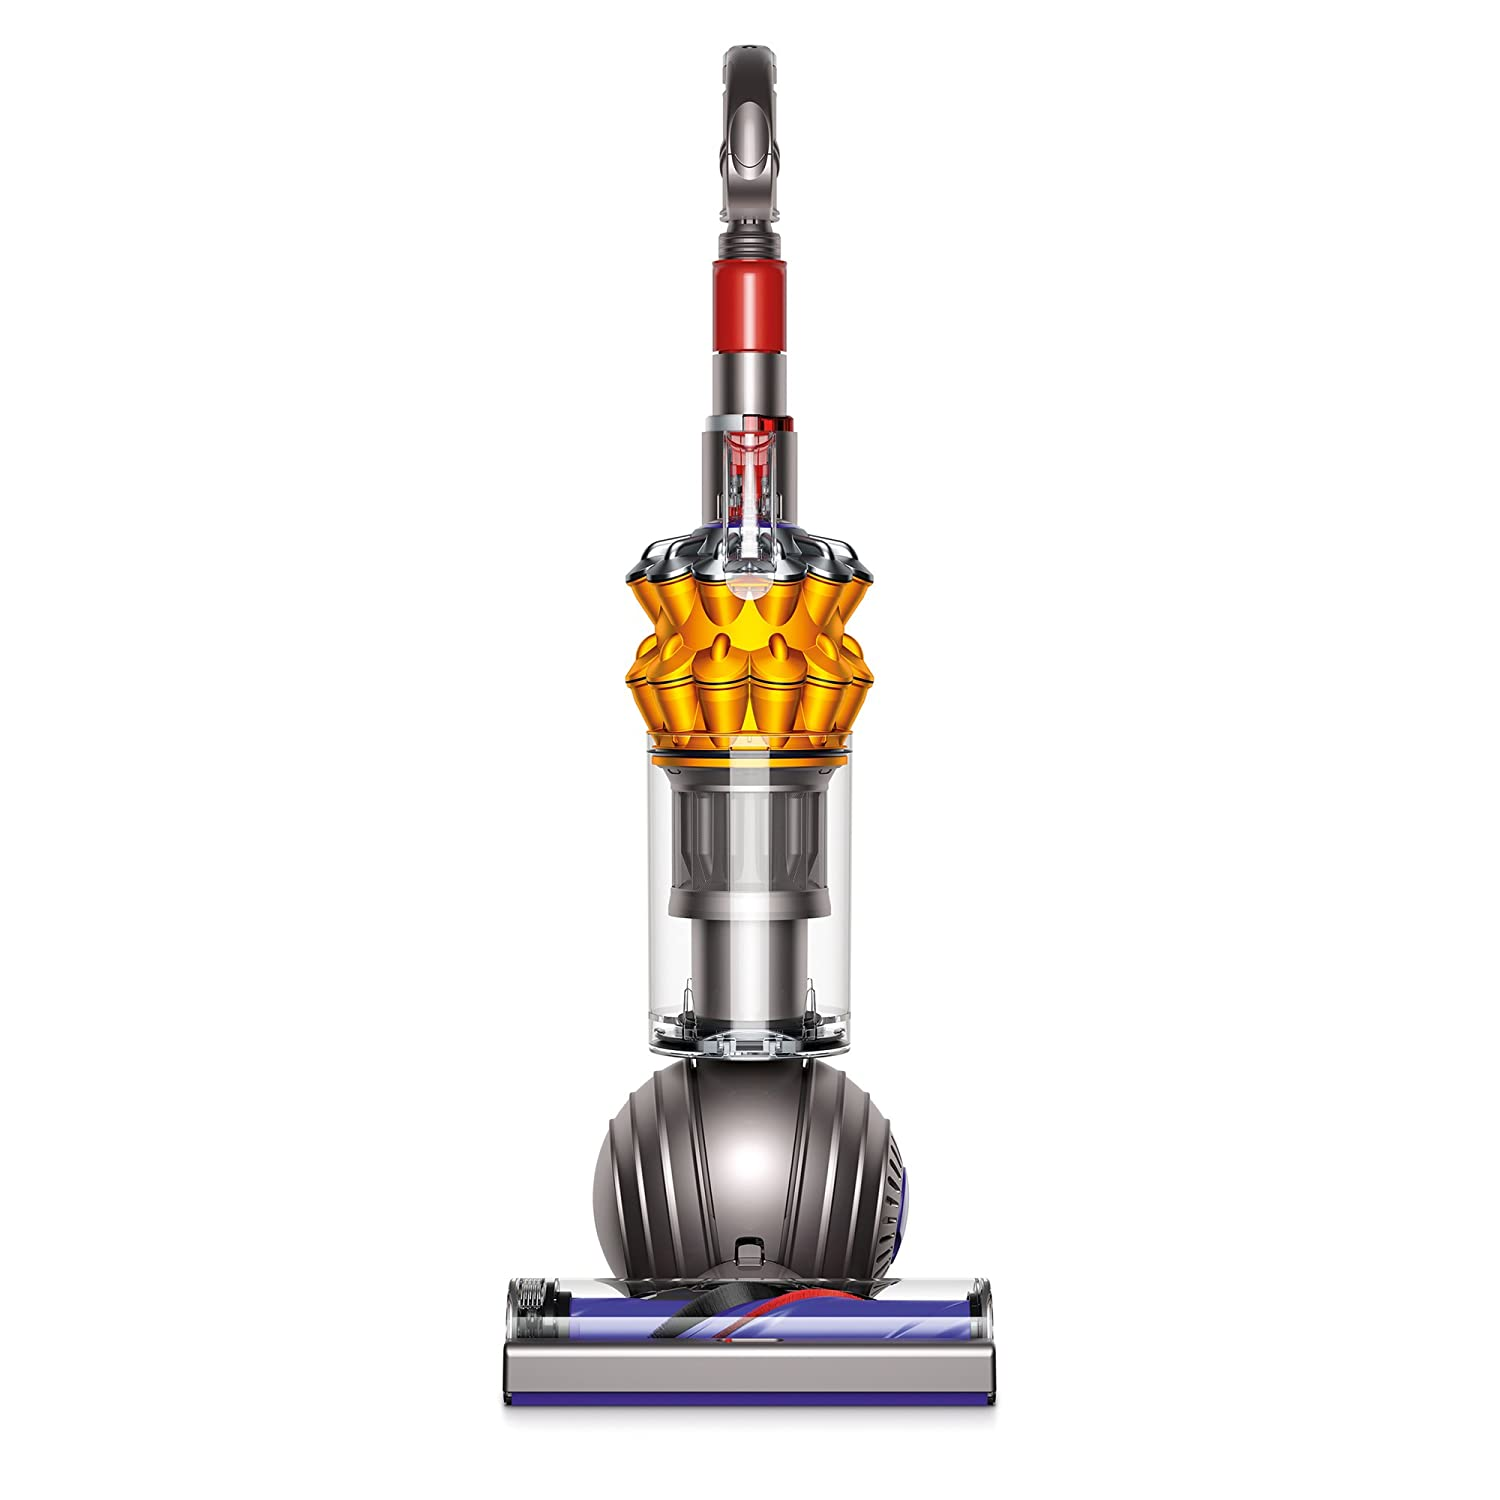 Dyson Small Ball Multi Floor Upright Vacuum Cleaner Iron/Yellow